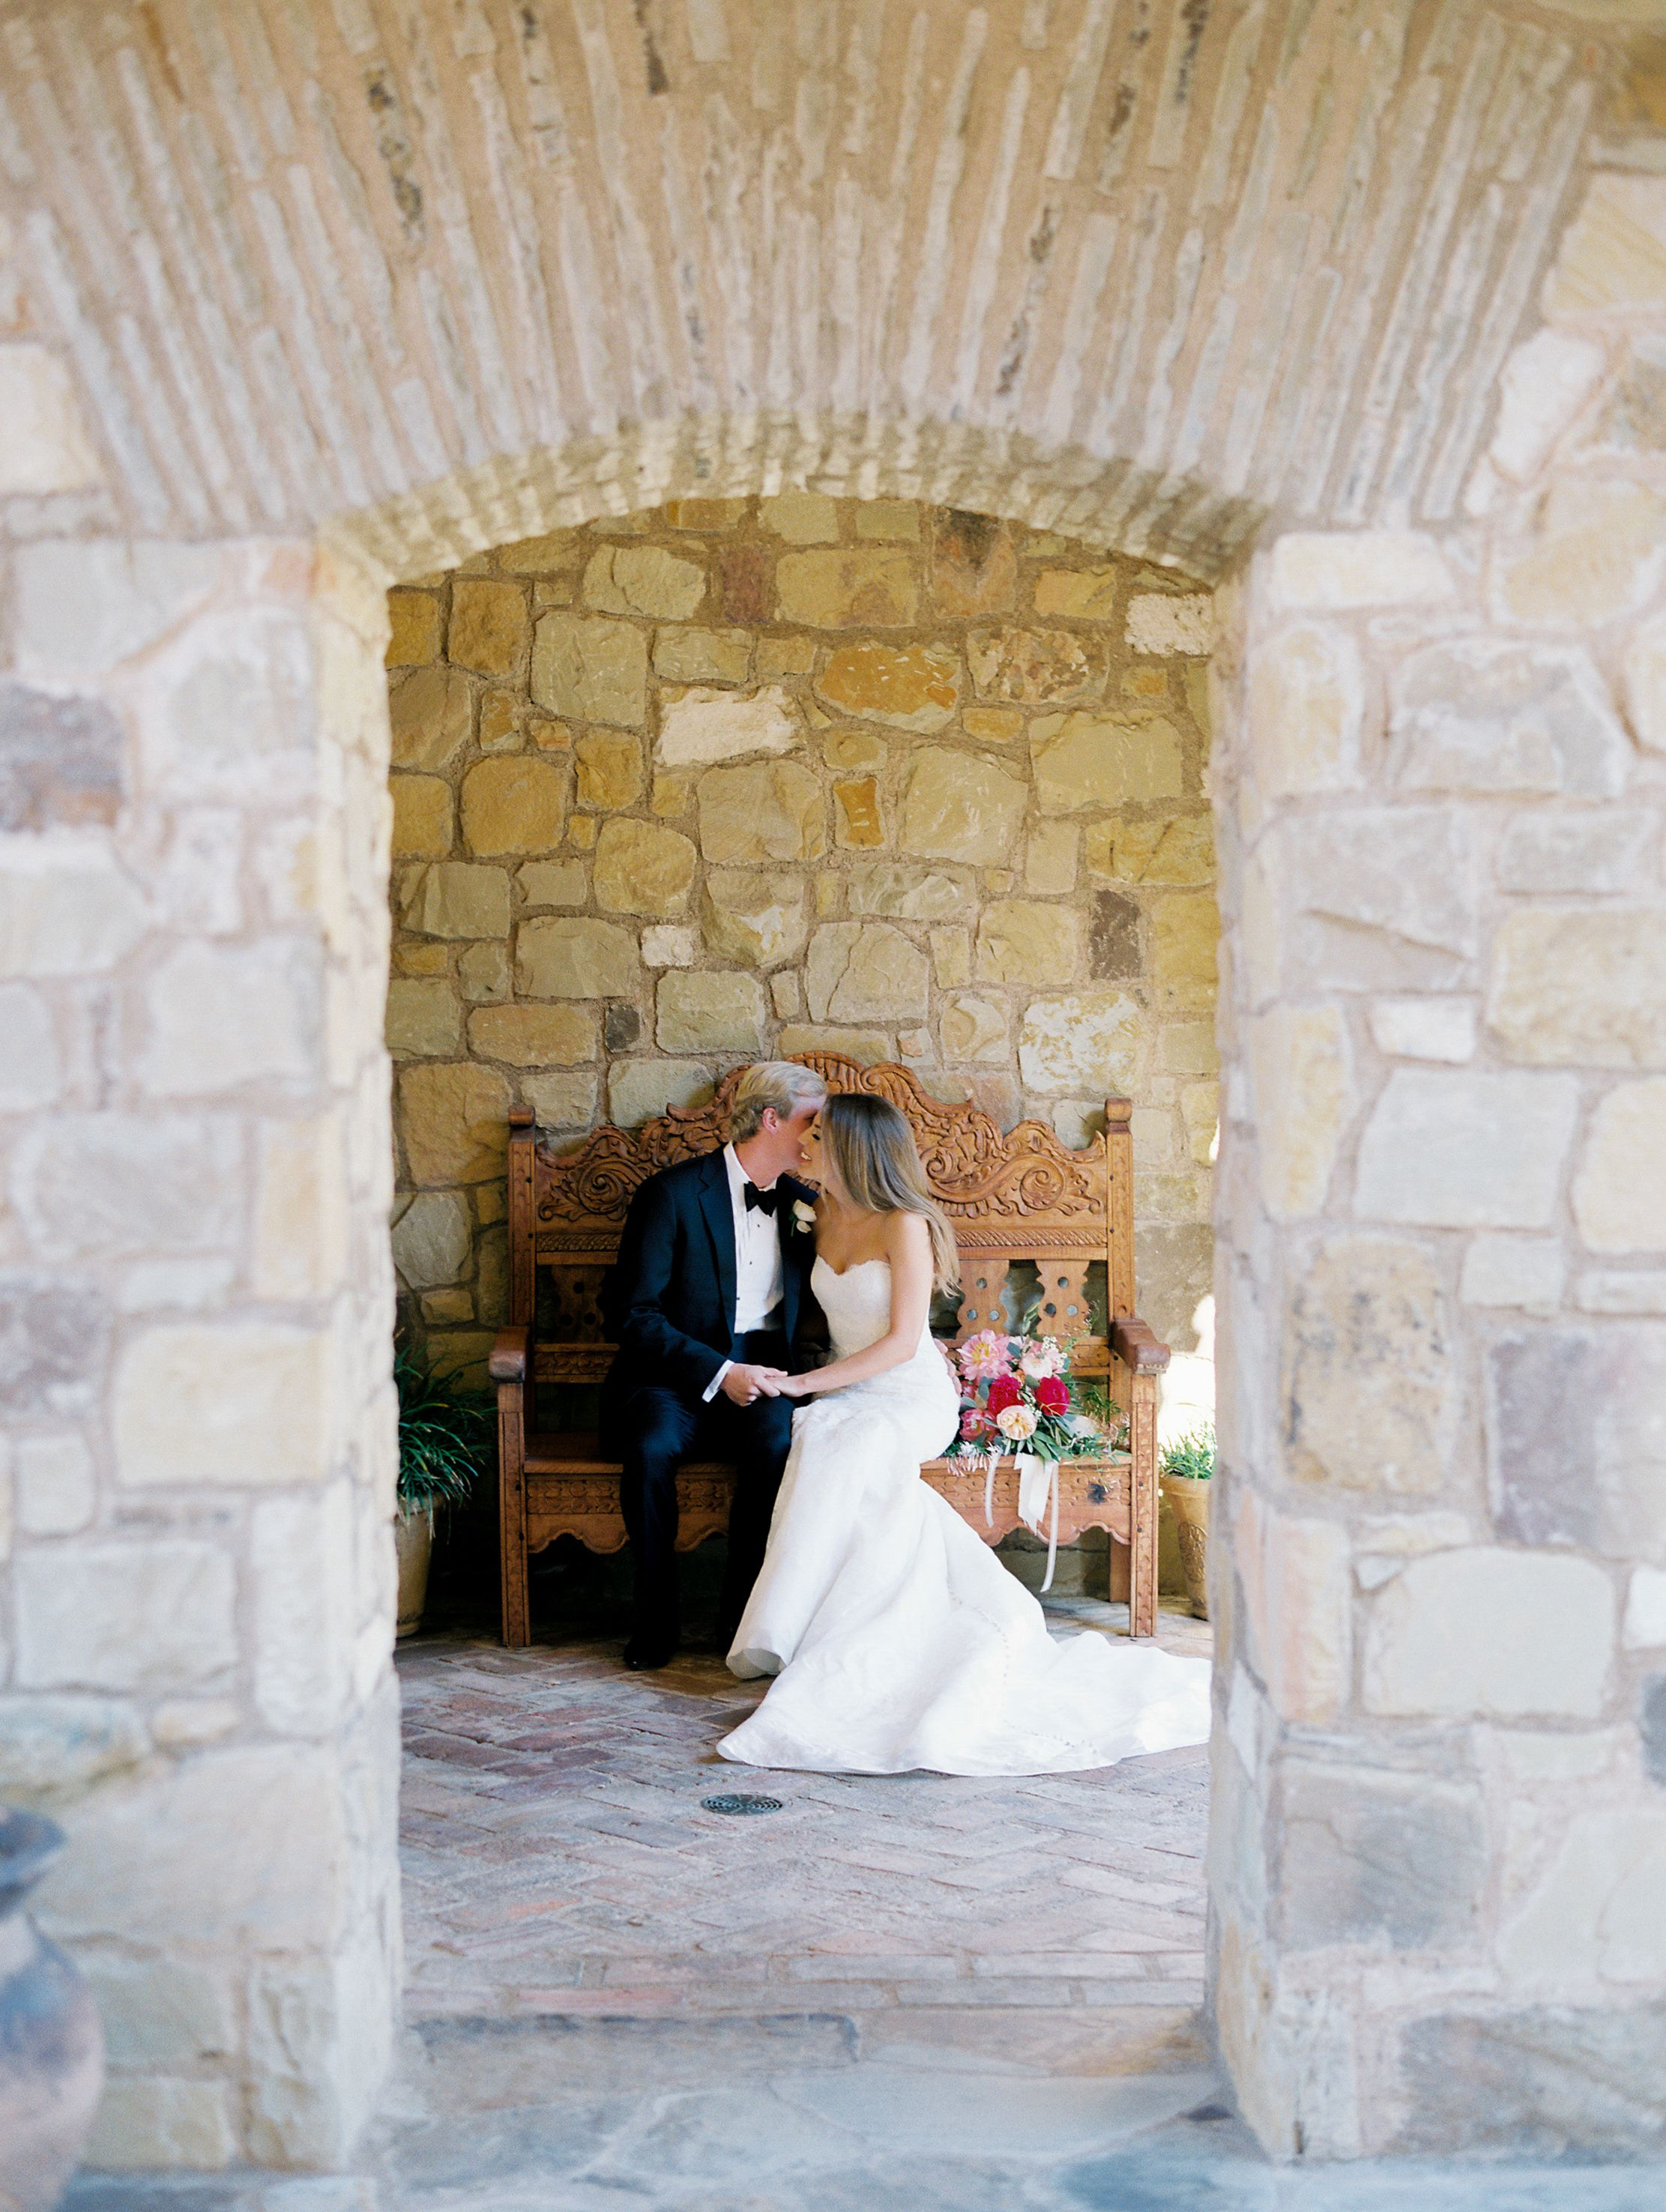 Brides Houston How To Get Your Marriage License